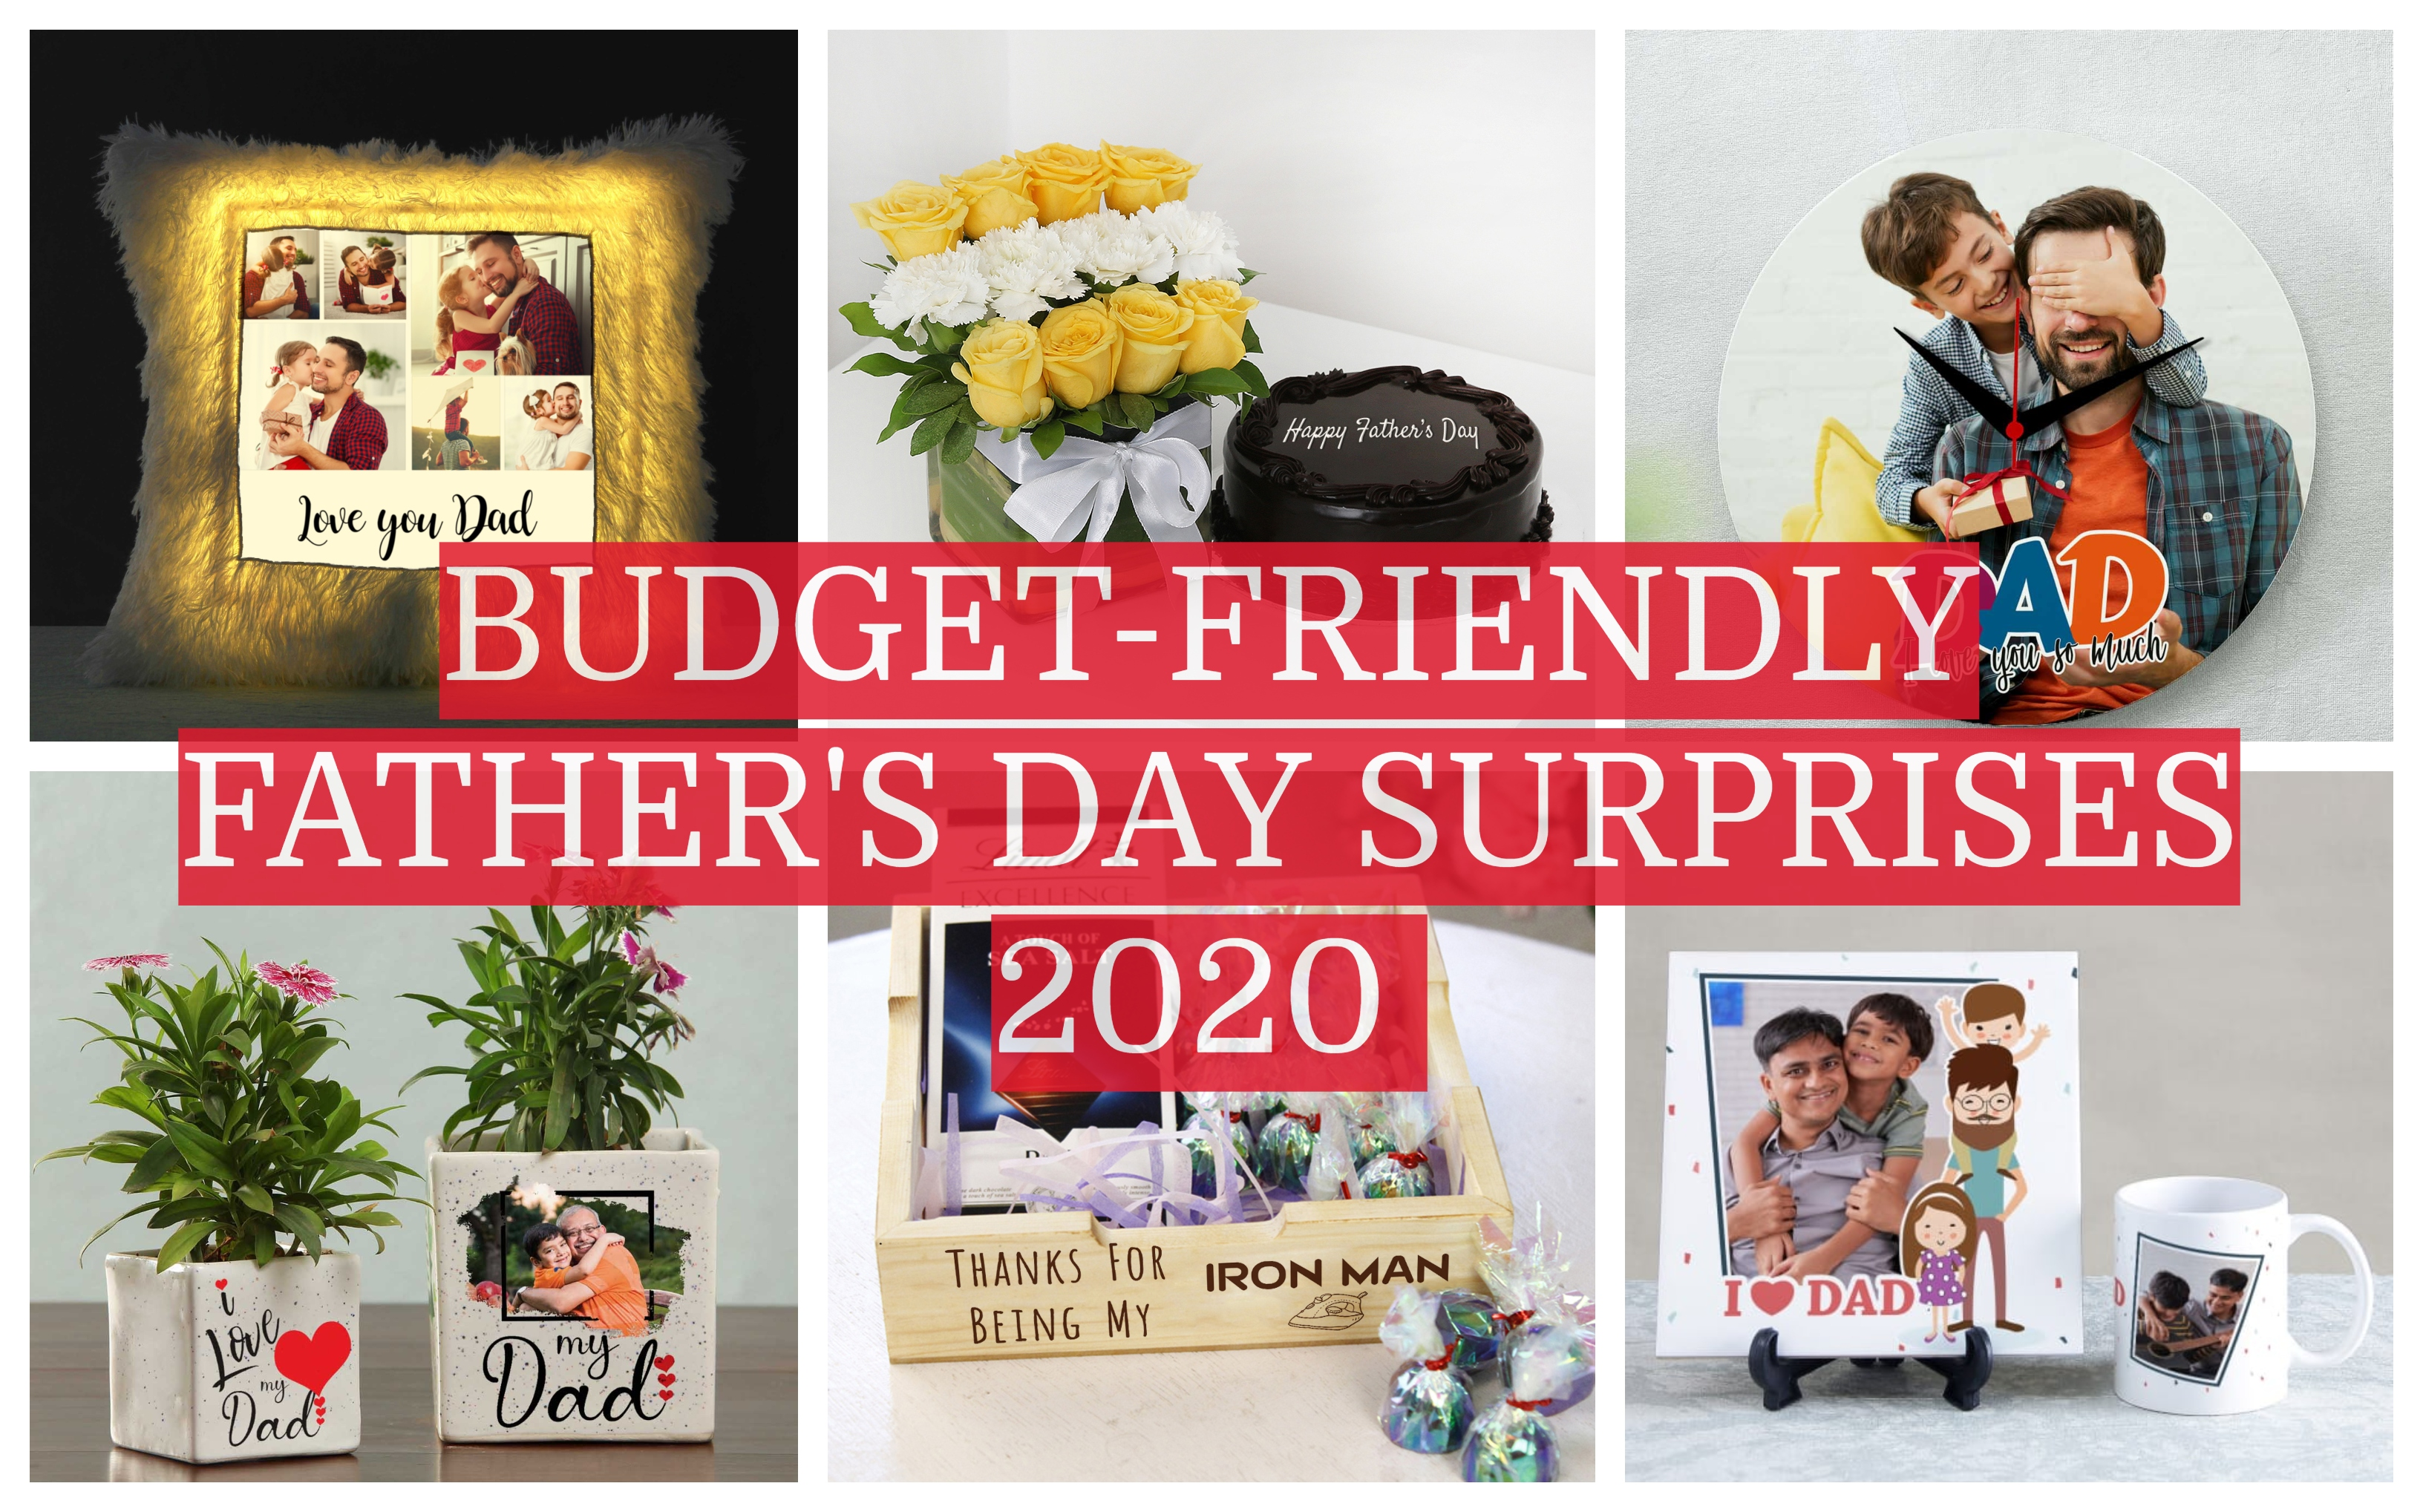 Father's Day Gifting Guide 2020-11 Pocket-friendly Surprises For Dad